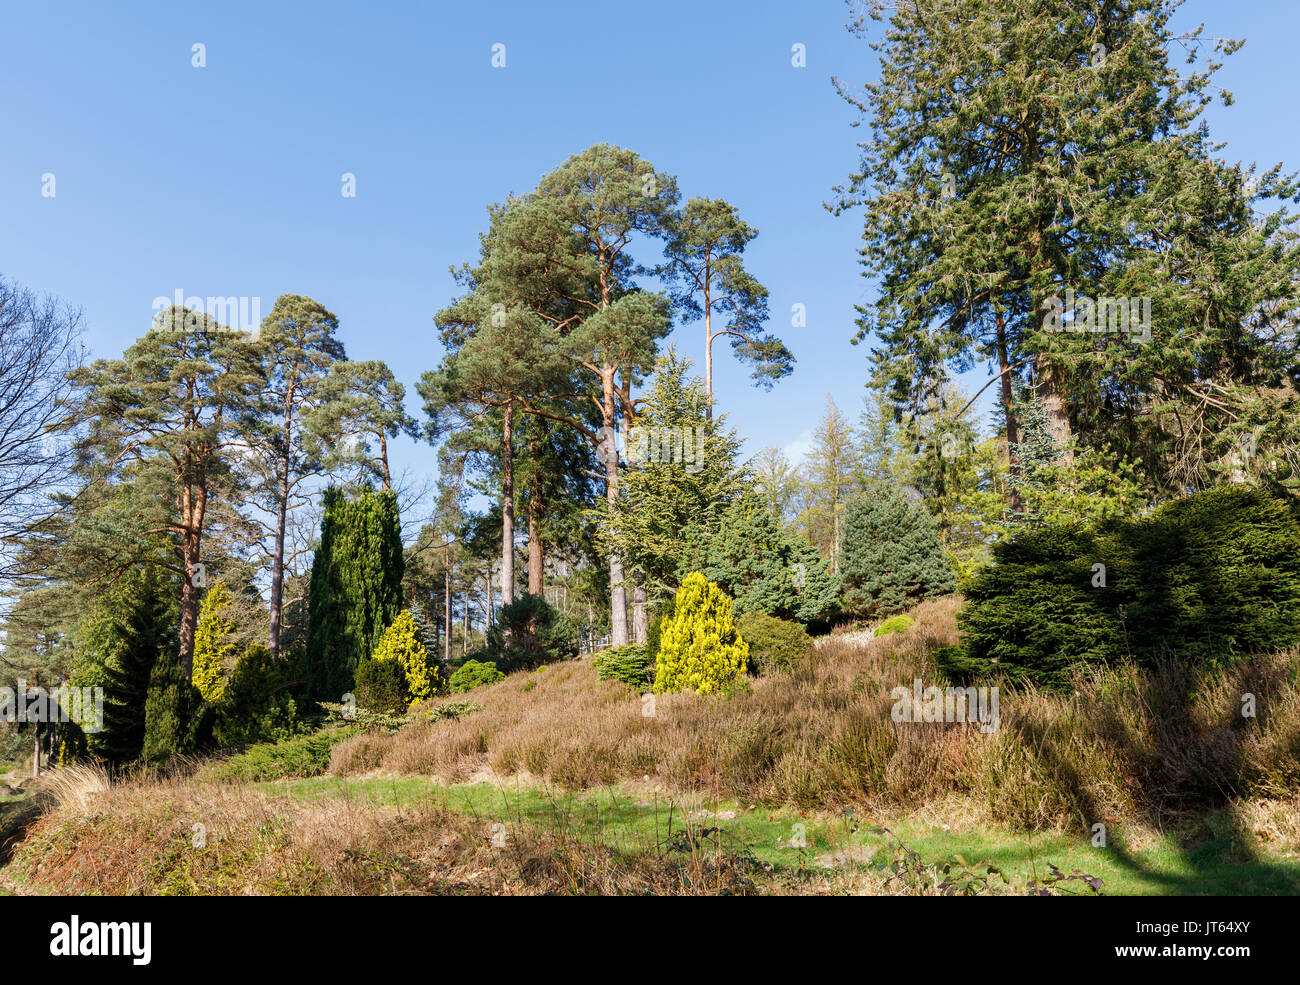 Large, tall pine trees at Bedgebury National Pinetum, Bedgebury, Kent south-east England in spring on a sunny day with clear blue sky - Stock Image